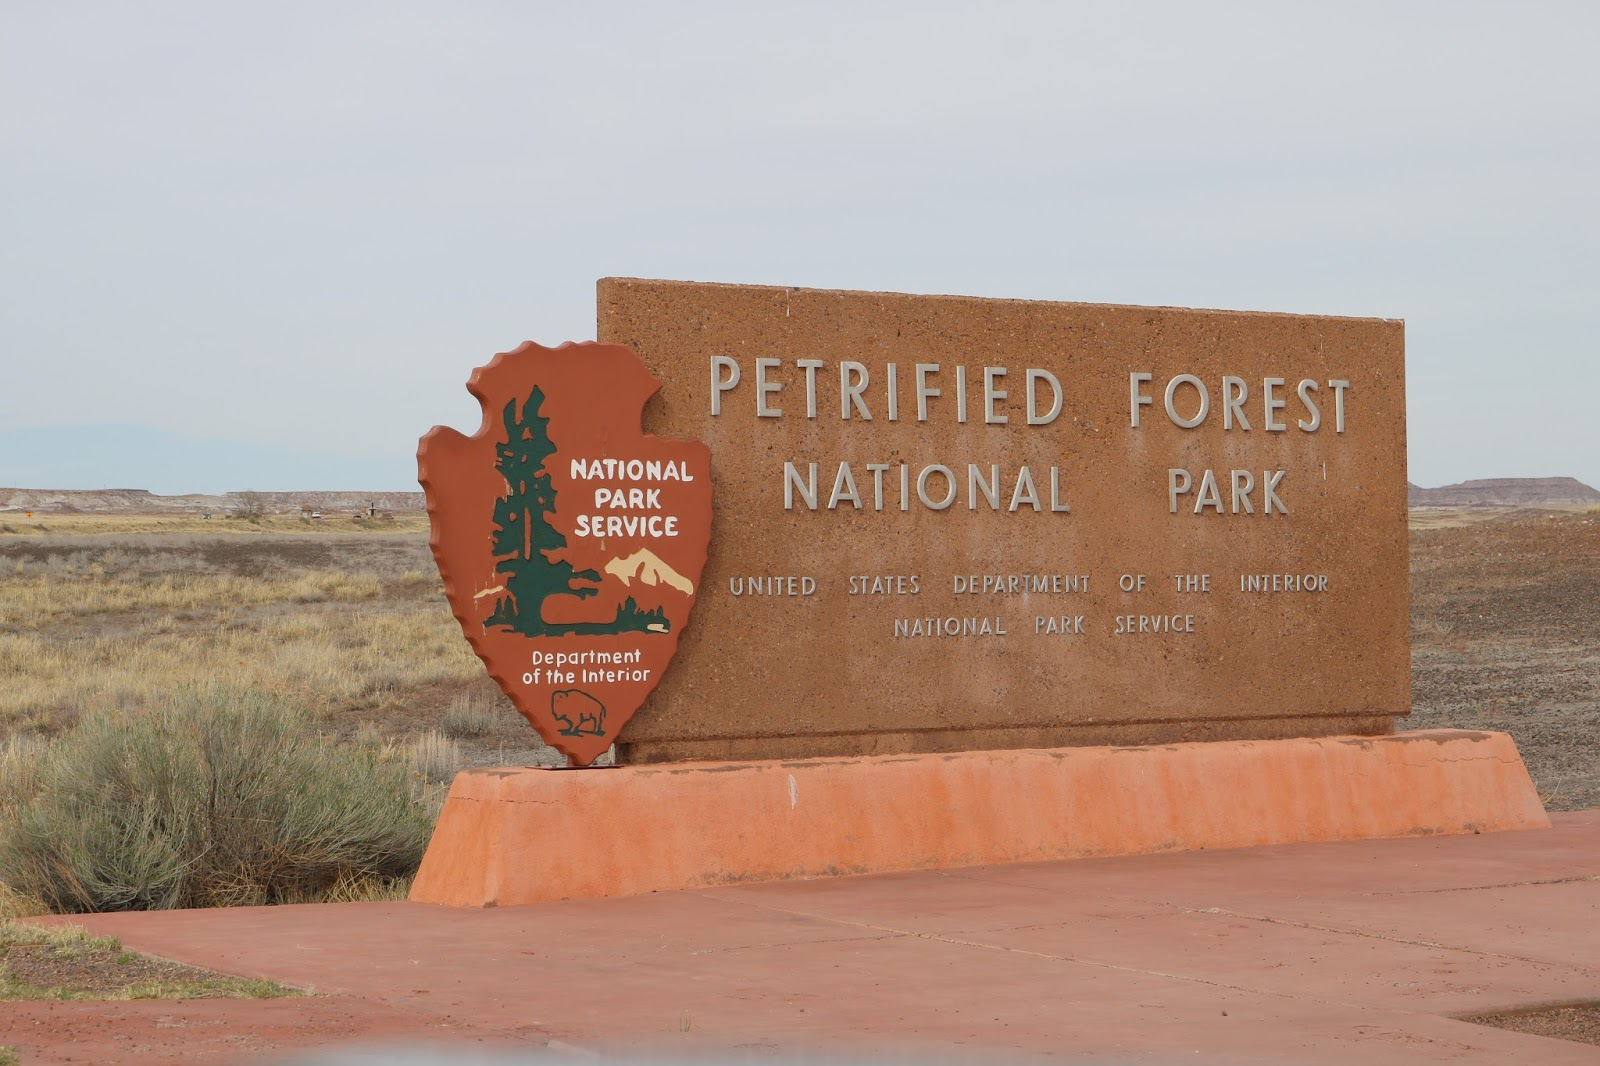 west of the petrified forest hwy 180 i 40 also merges with historic route 66